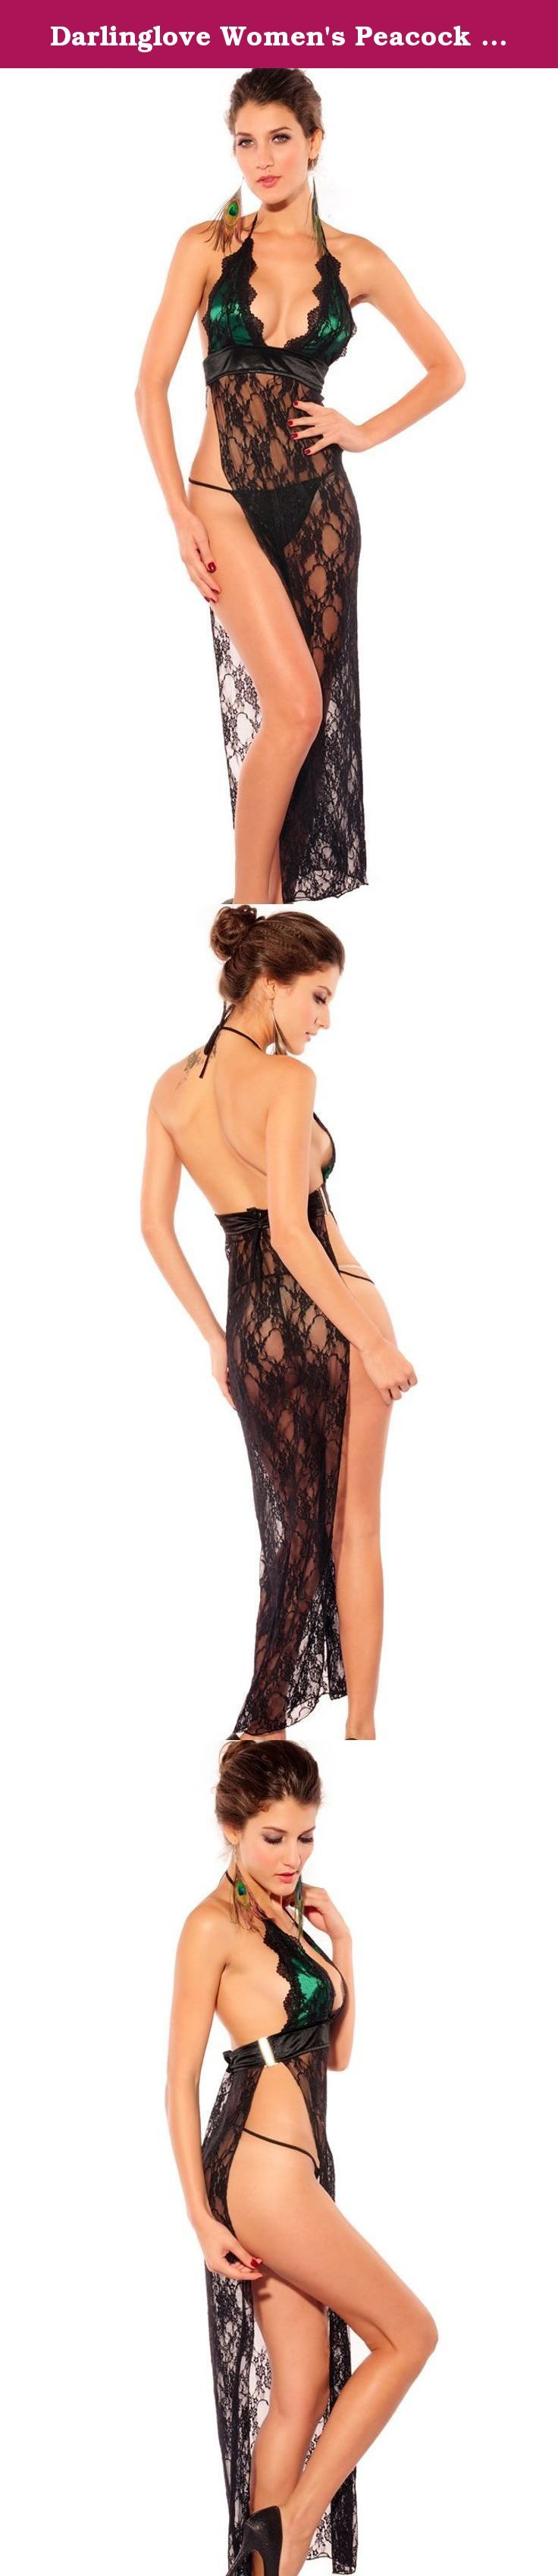 Darlinglove Women's Peacock Color Midnight Lace Sheer Wedding Lingerie Gowns. About DarlingLove DarlingLove committed to providing women with sexy Halloween costume, jumpsuit, lingerie etc nearly 20 years. We creates comfortable, very cool and attractive products through constant innovation. We have more than 200 employees in concentrate on making the world's lingerie for you. Without leaving your home, you could purchase lingerie with premium quality at wholesale prices. Details Midnight...